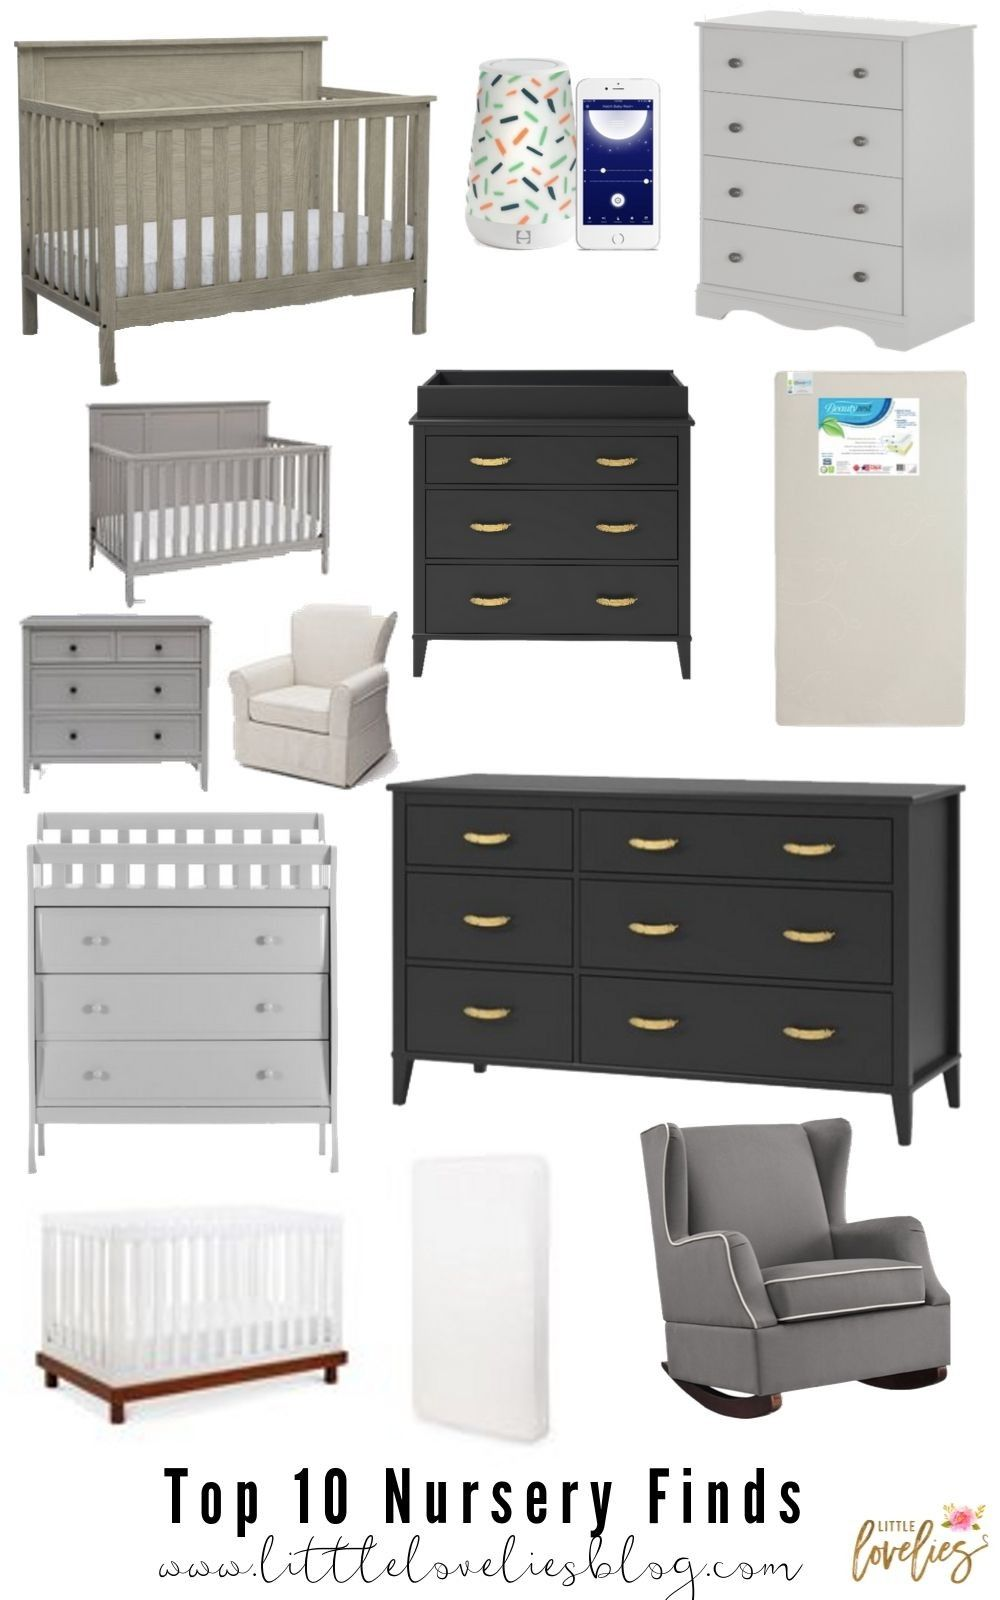 Affordable Nursery Finds From Walmart Kids Decor Baby